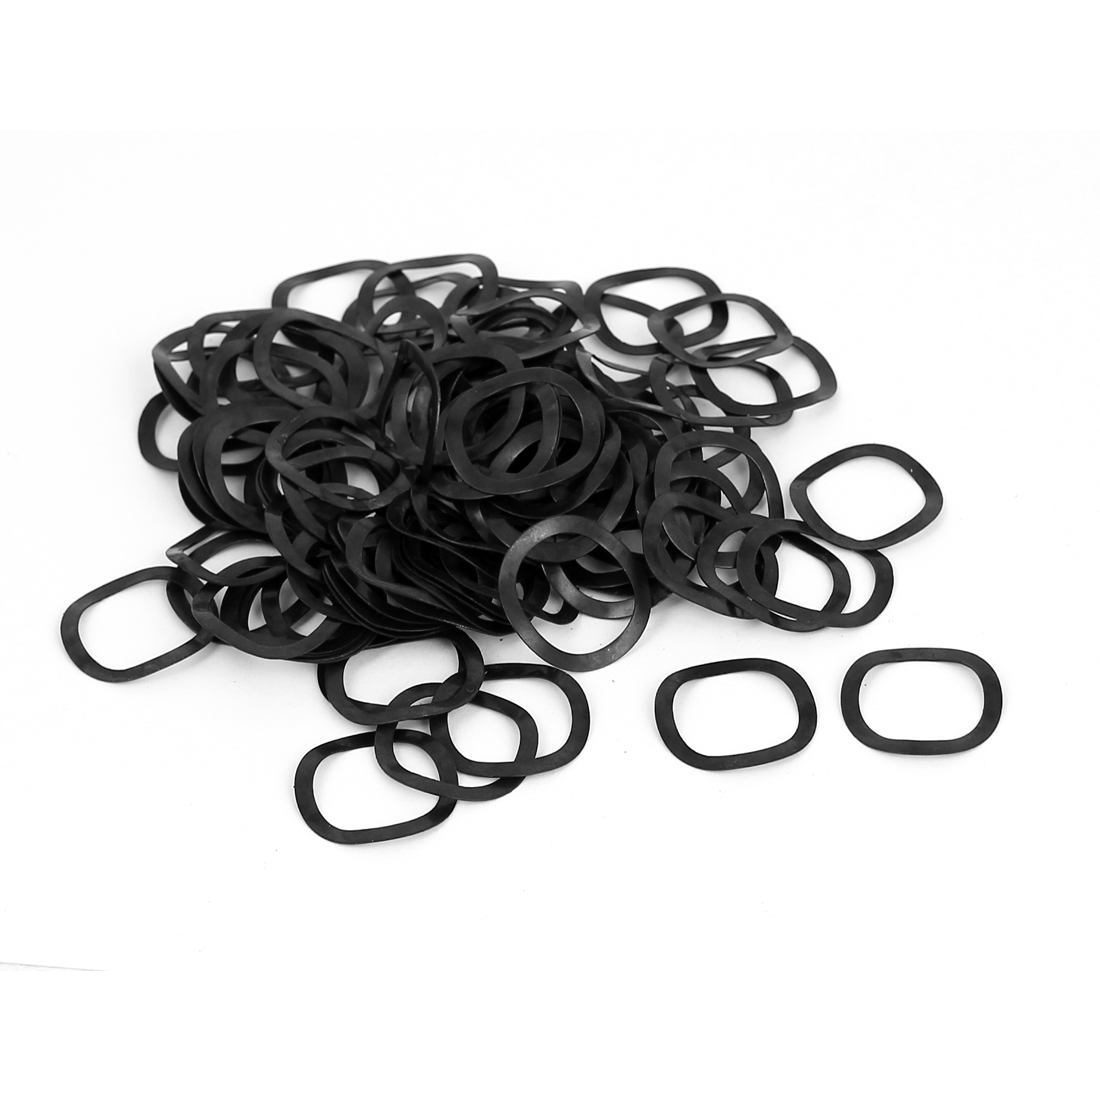 100pcs Black Metal Wavy Wave Crinkle Spring Washers M16 16mm x 21mm x 0.3mm